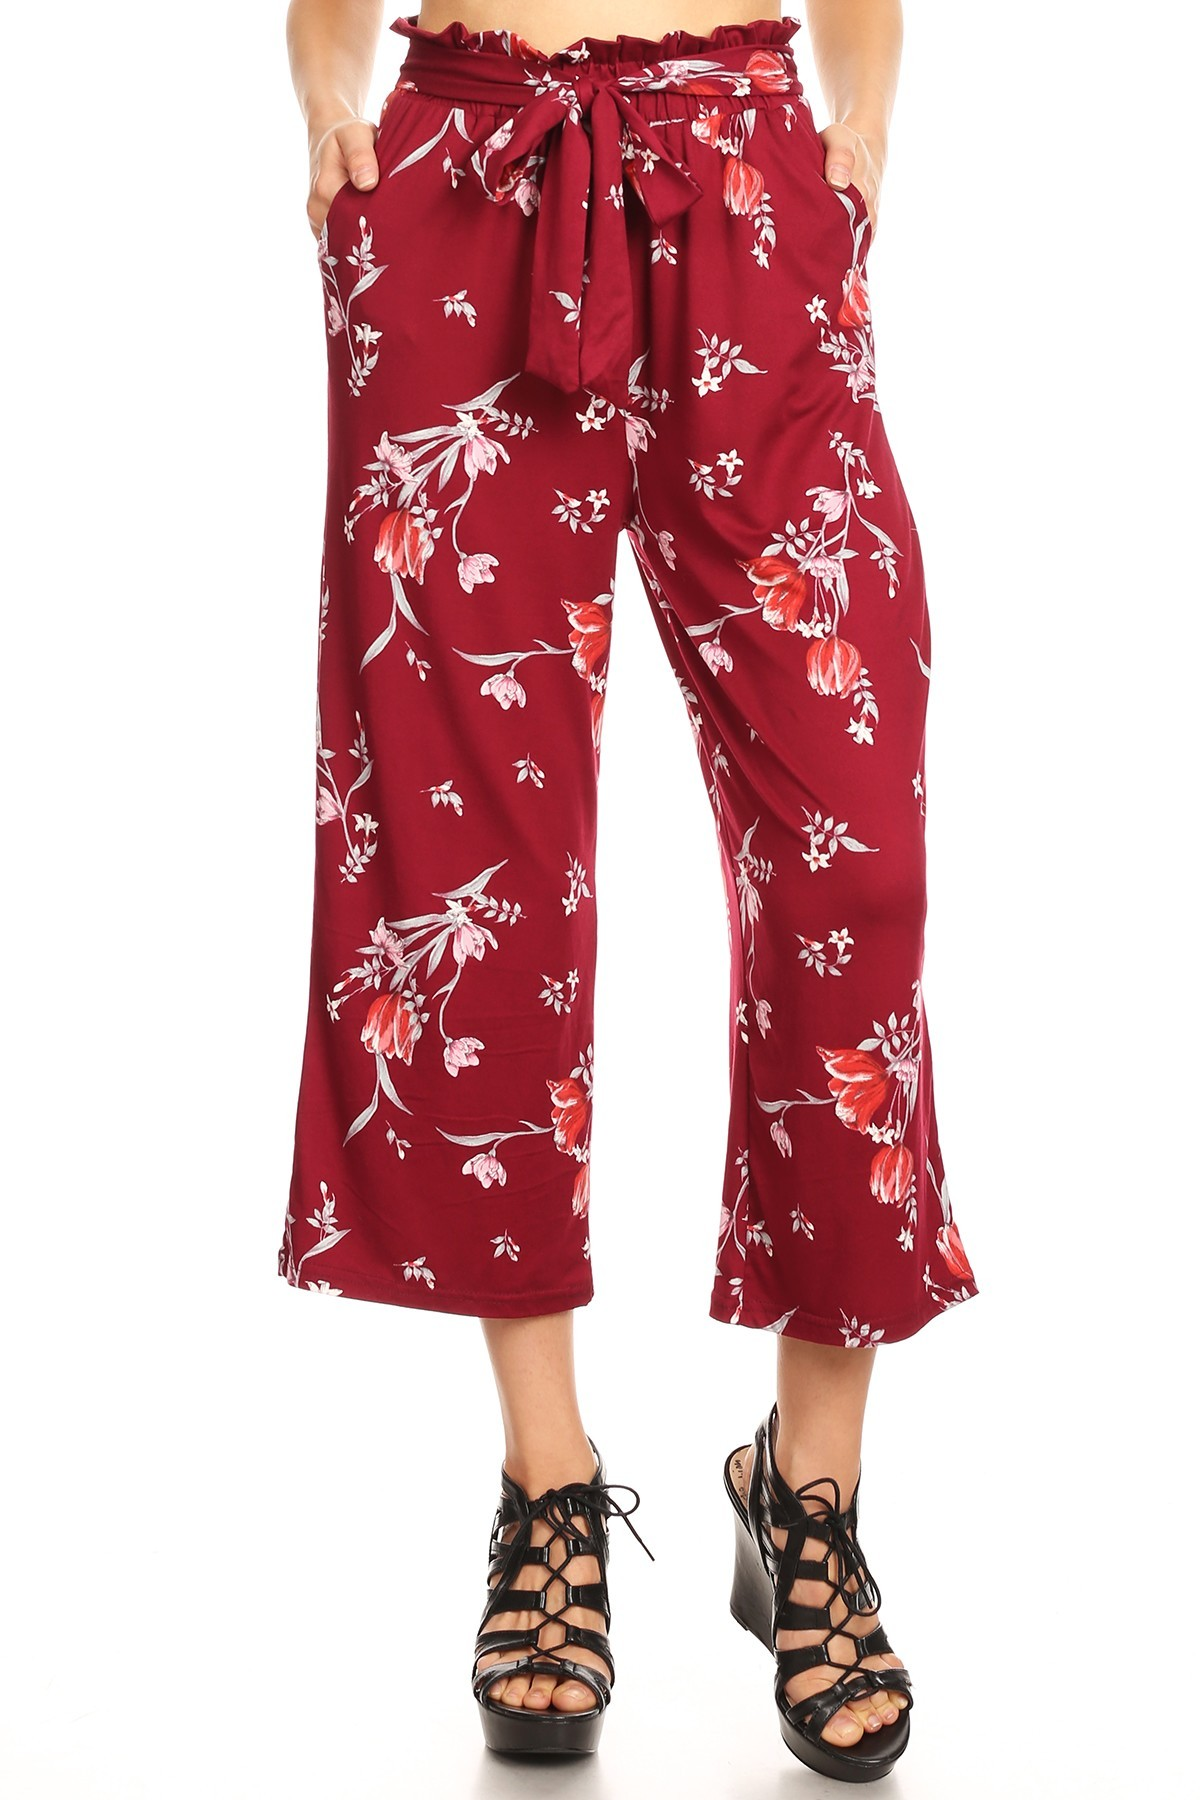 BURGUNDY/RED FLORAL PRINT CROPPED PAPER BAG WIDE LEG PANTS#9SLP02-FL04